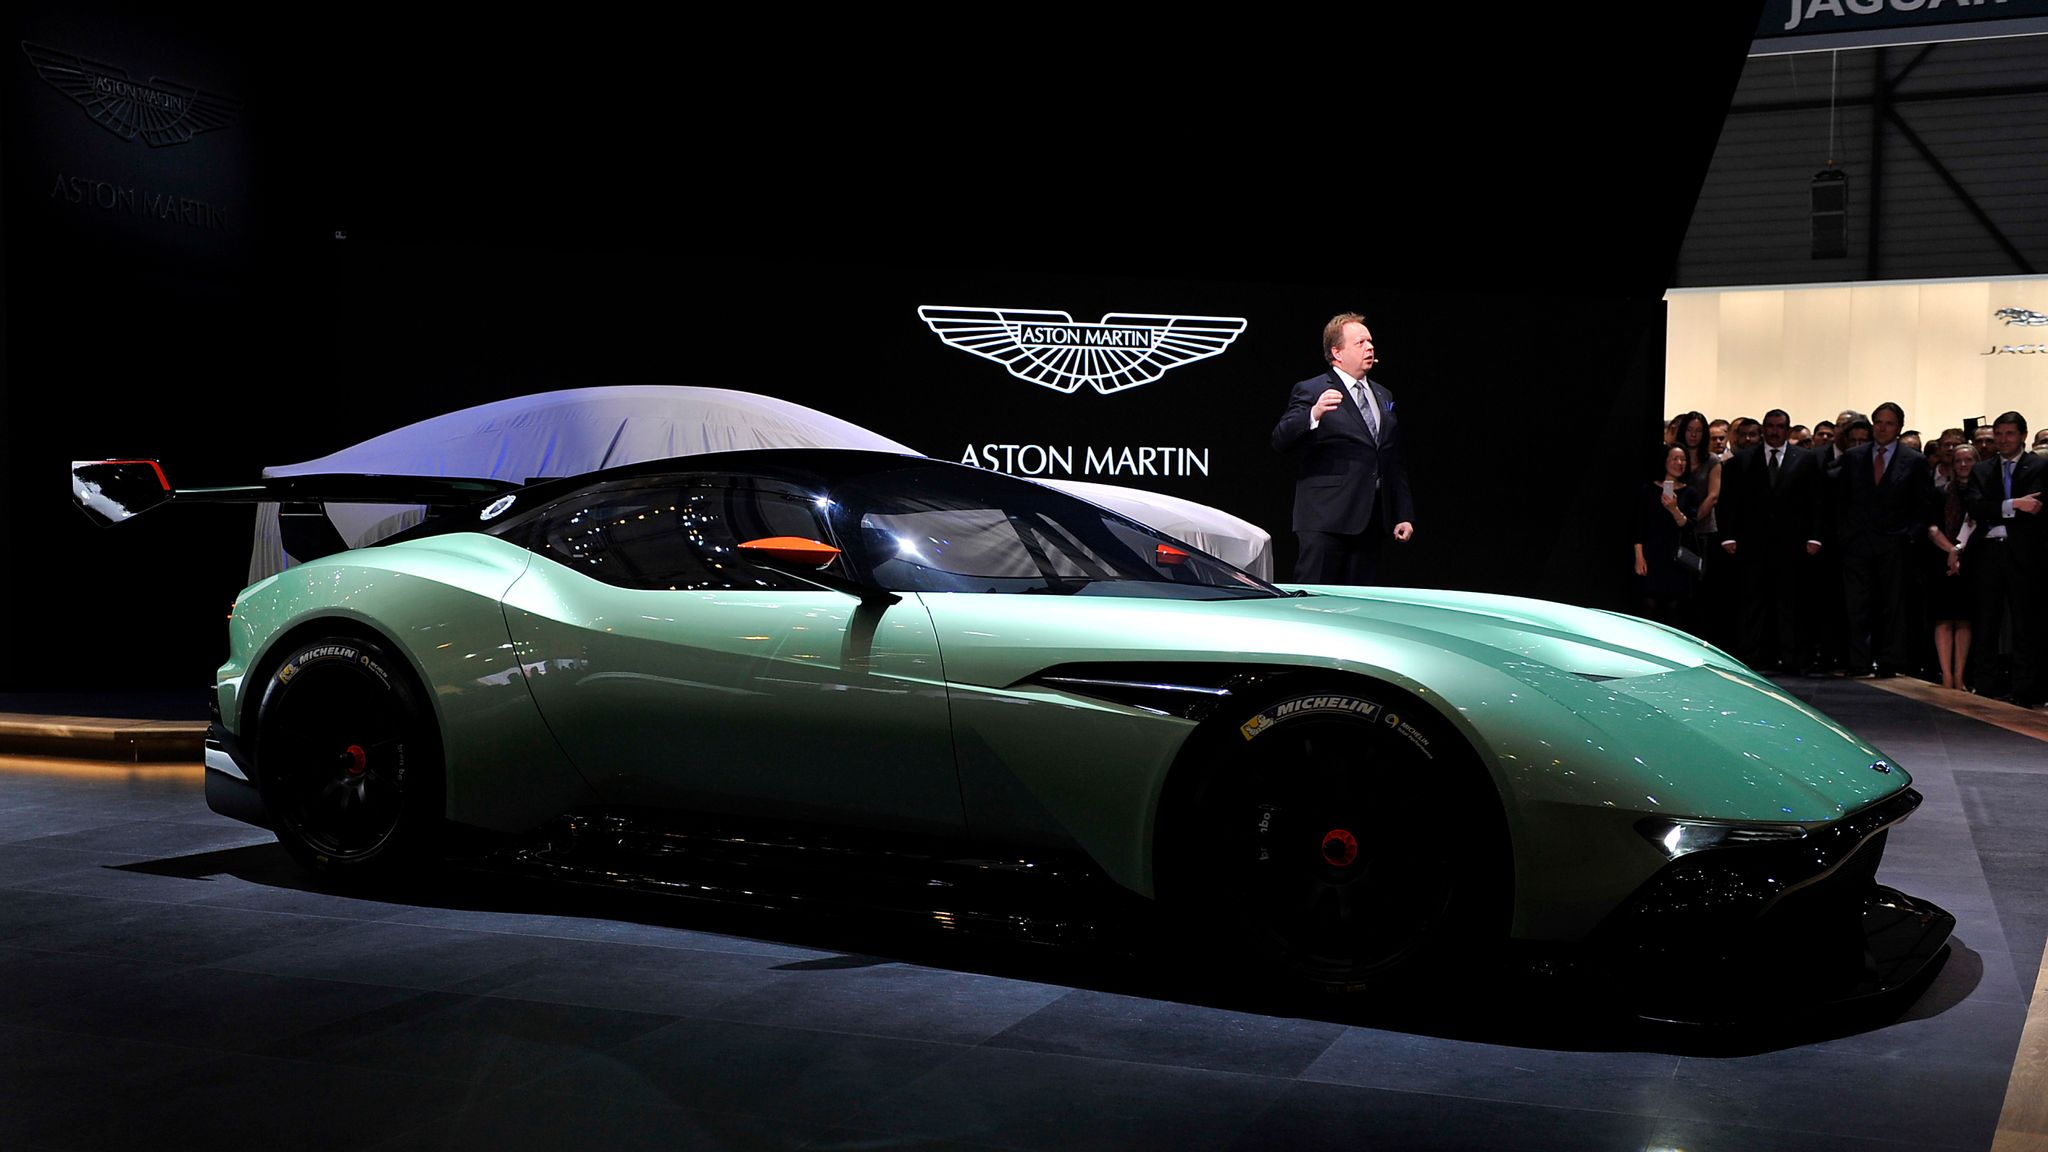 aston martin considers flying in parts after brexit amid dover port